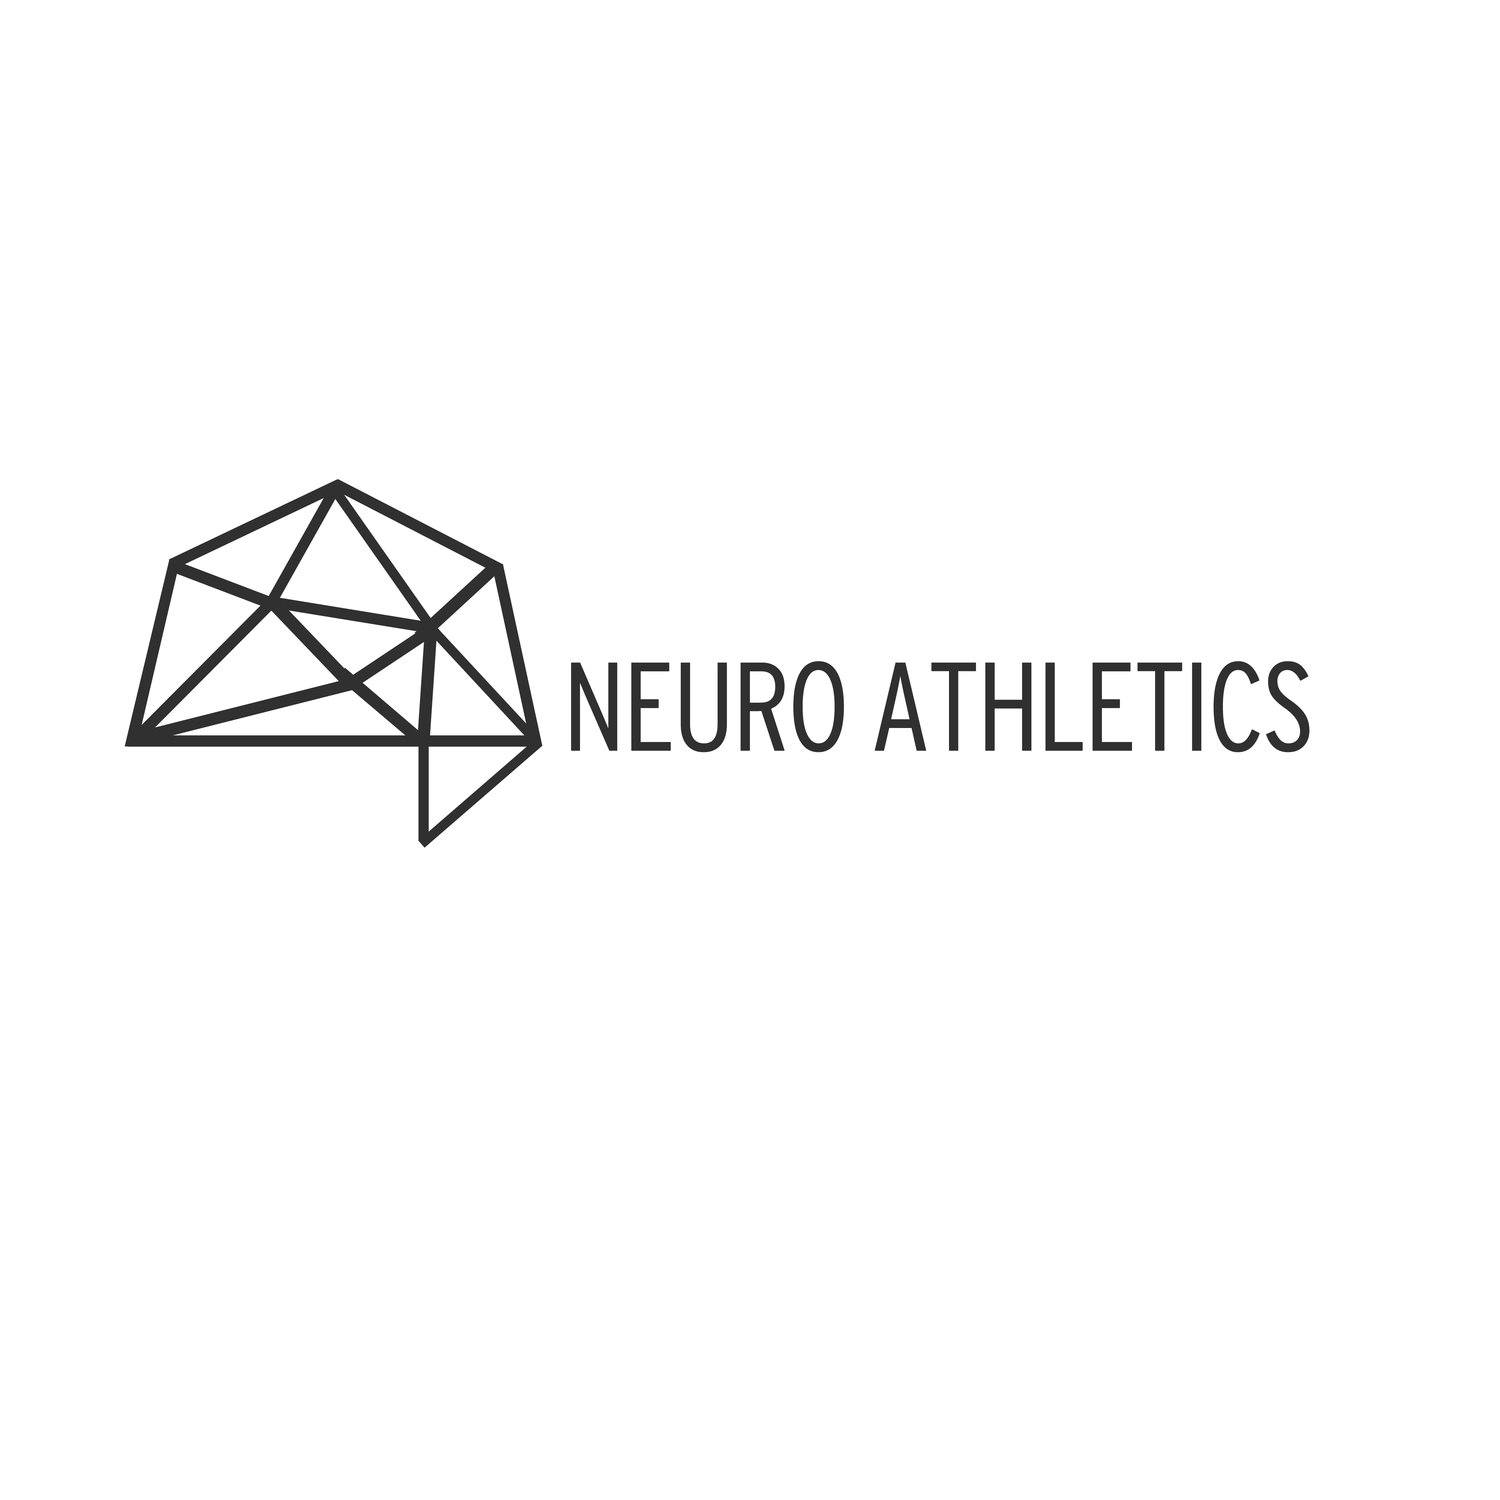 Neuro Athletics